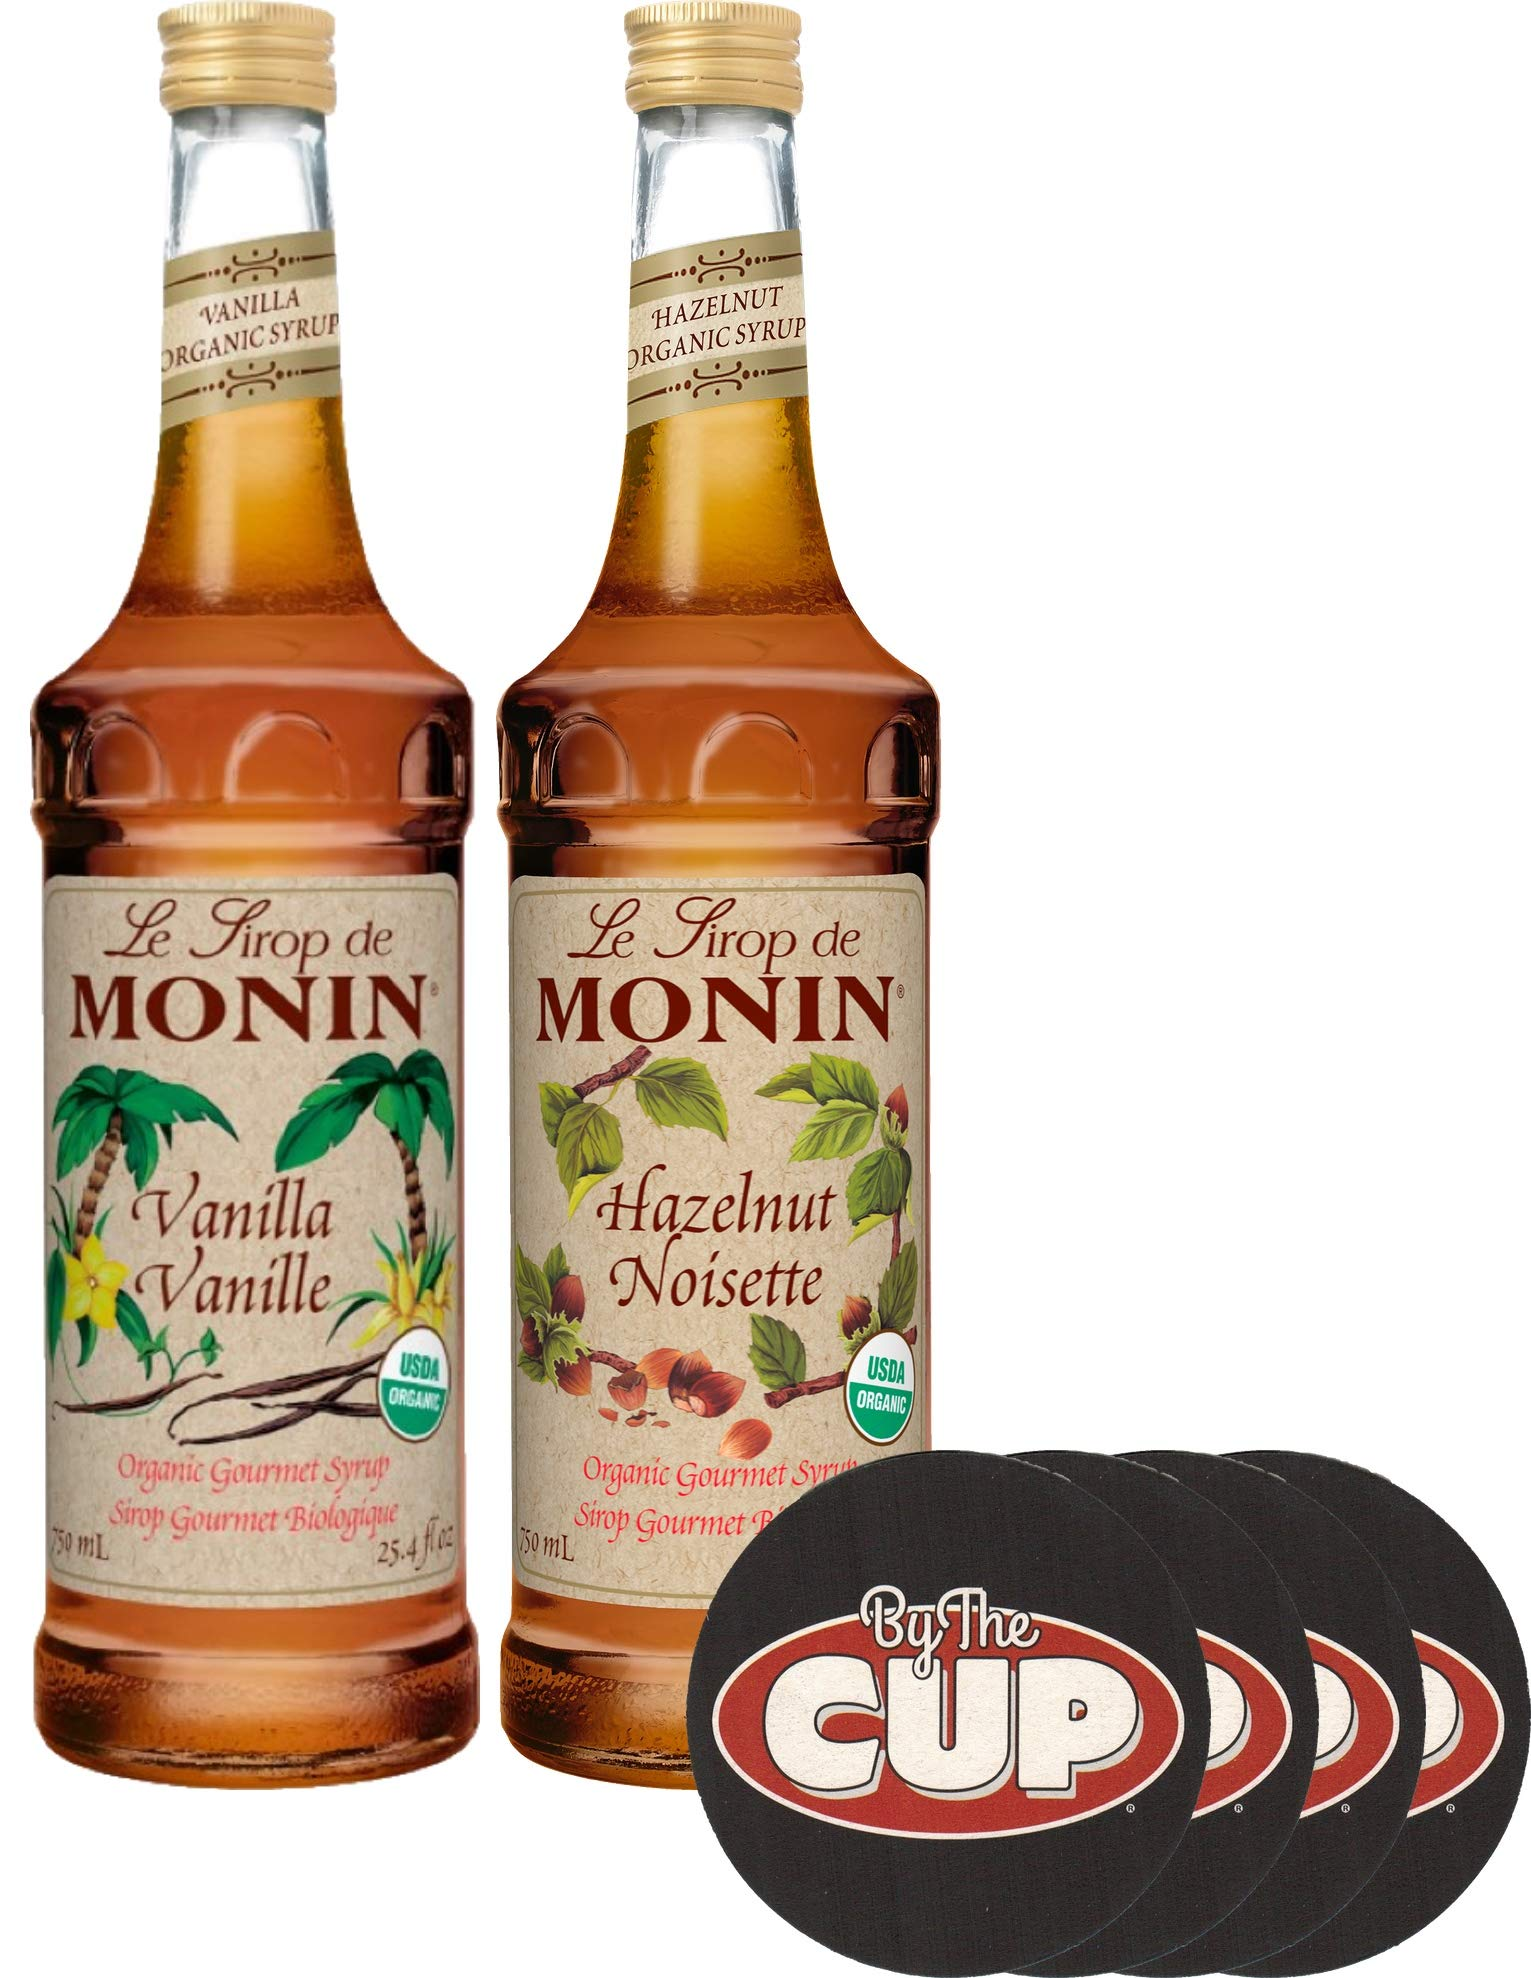 Monin Organic Coffee Syrup Vanilla and Hazelnut 750 ml Bottles with Set of By The Cup Coasters